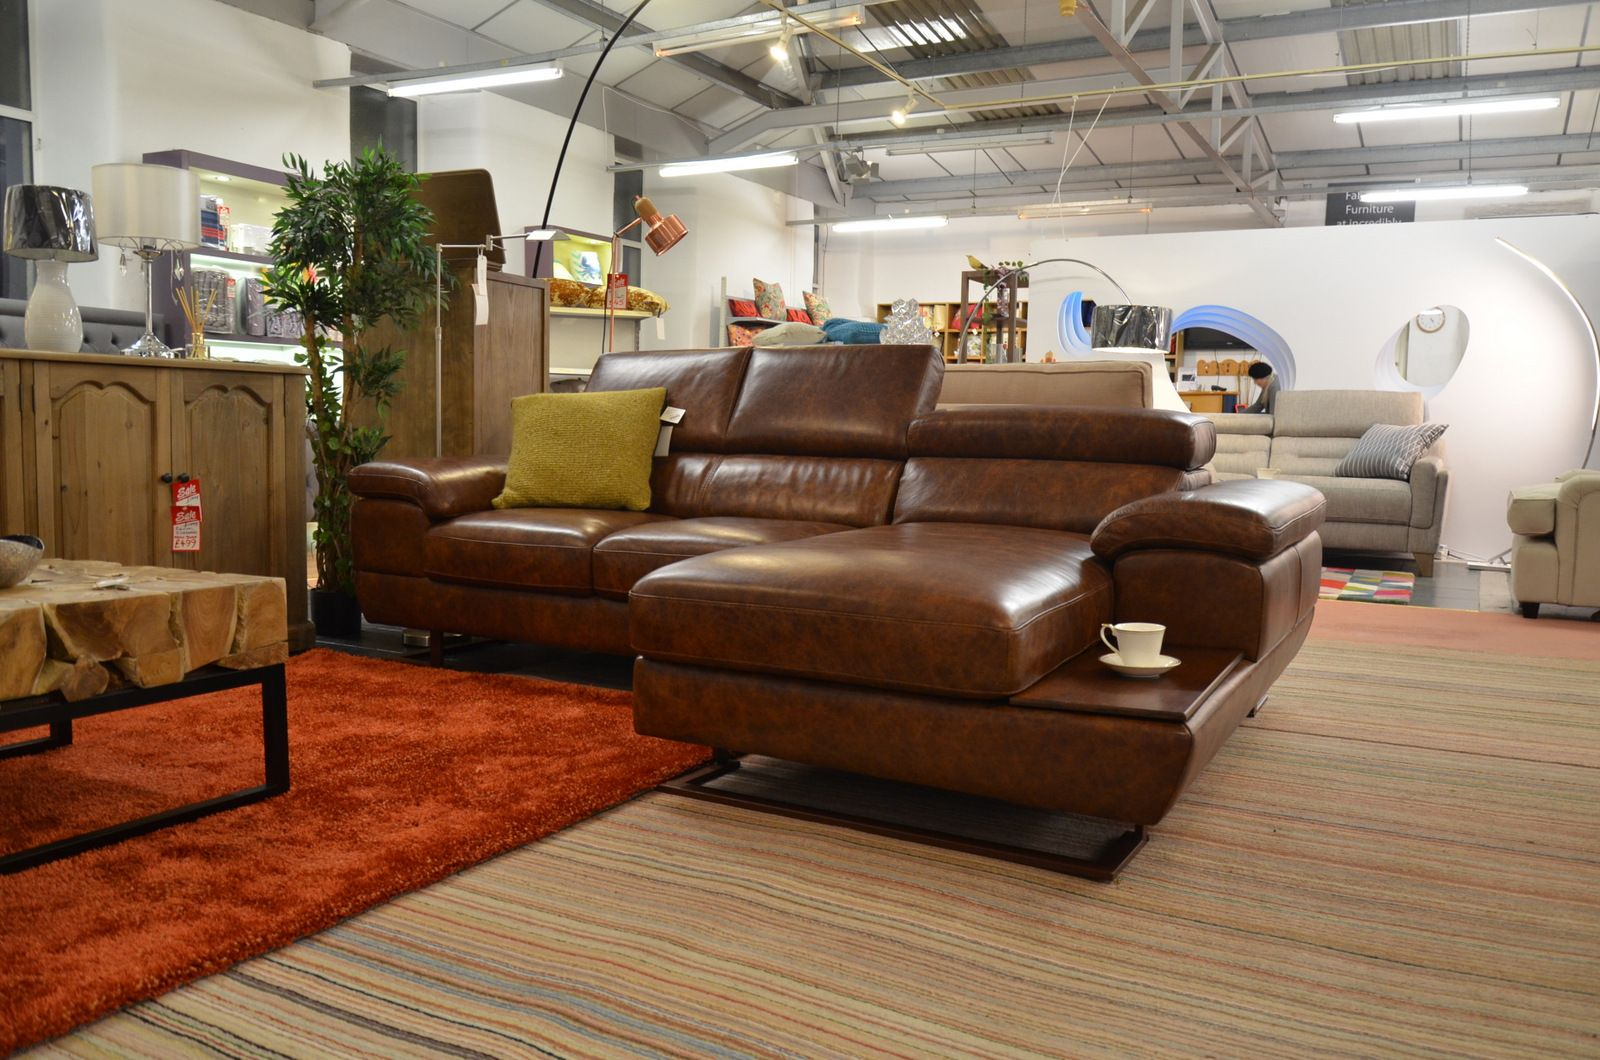 Feroce Chaise Sofa in Brown Leather with Pull Out Seats and Adjustable  Headrests